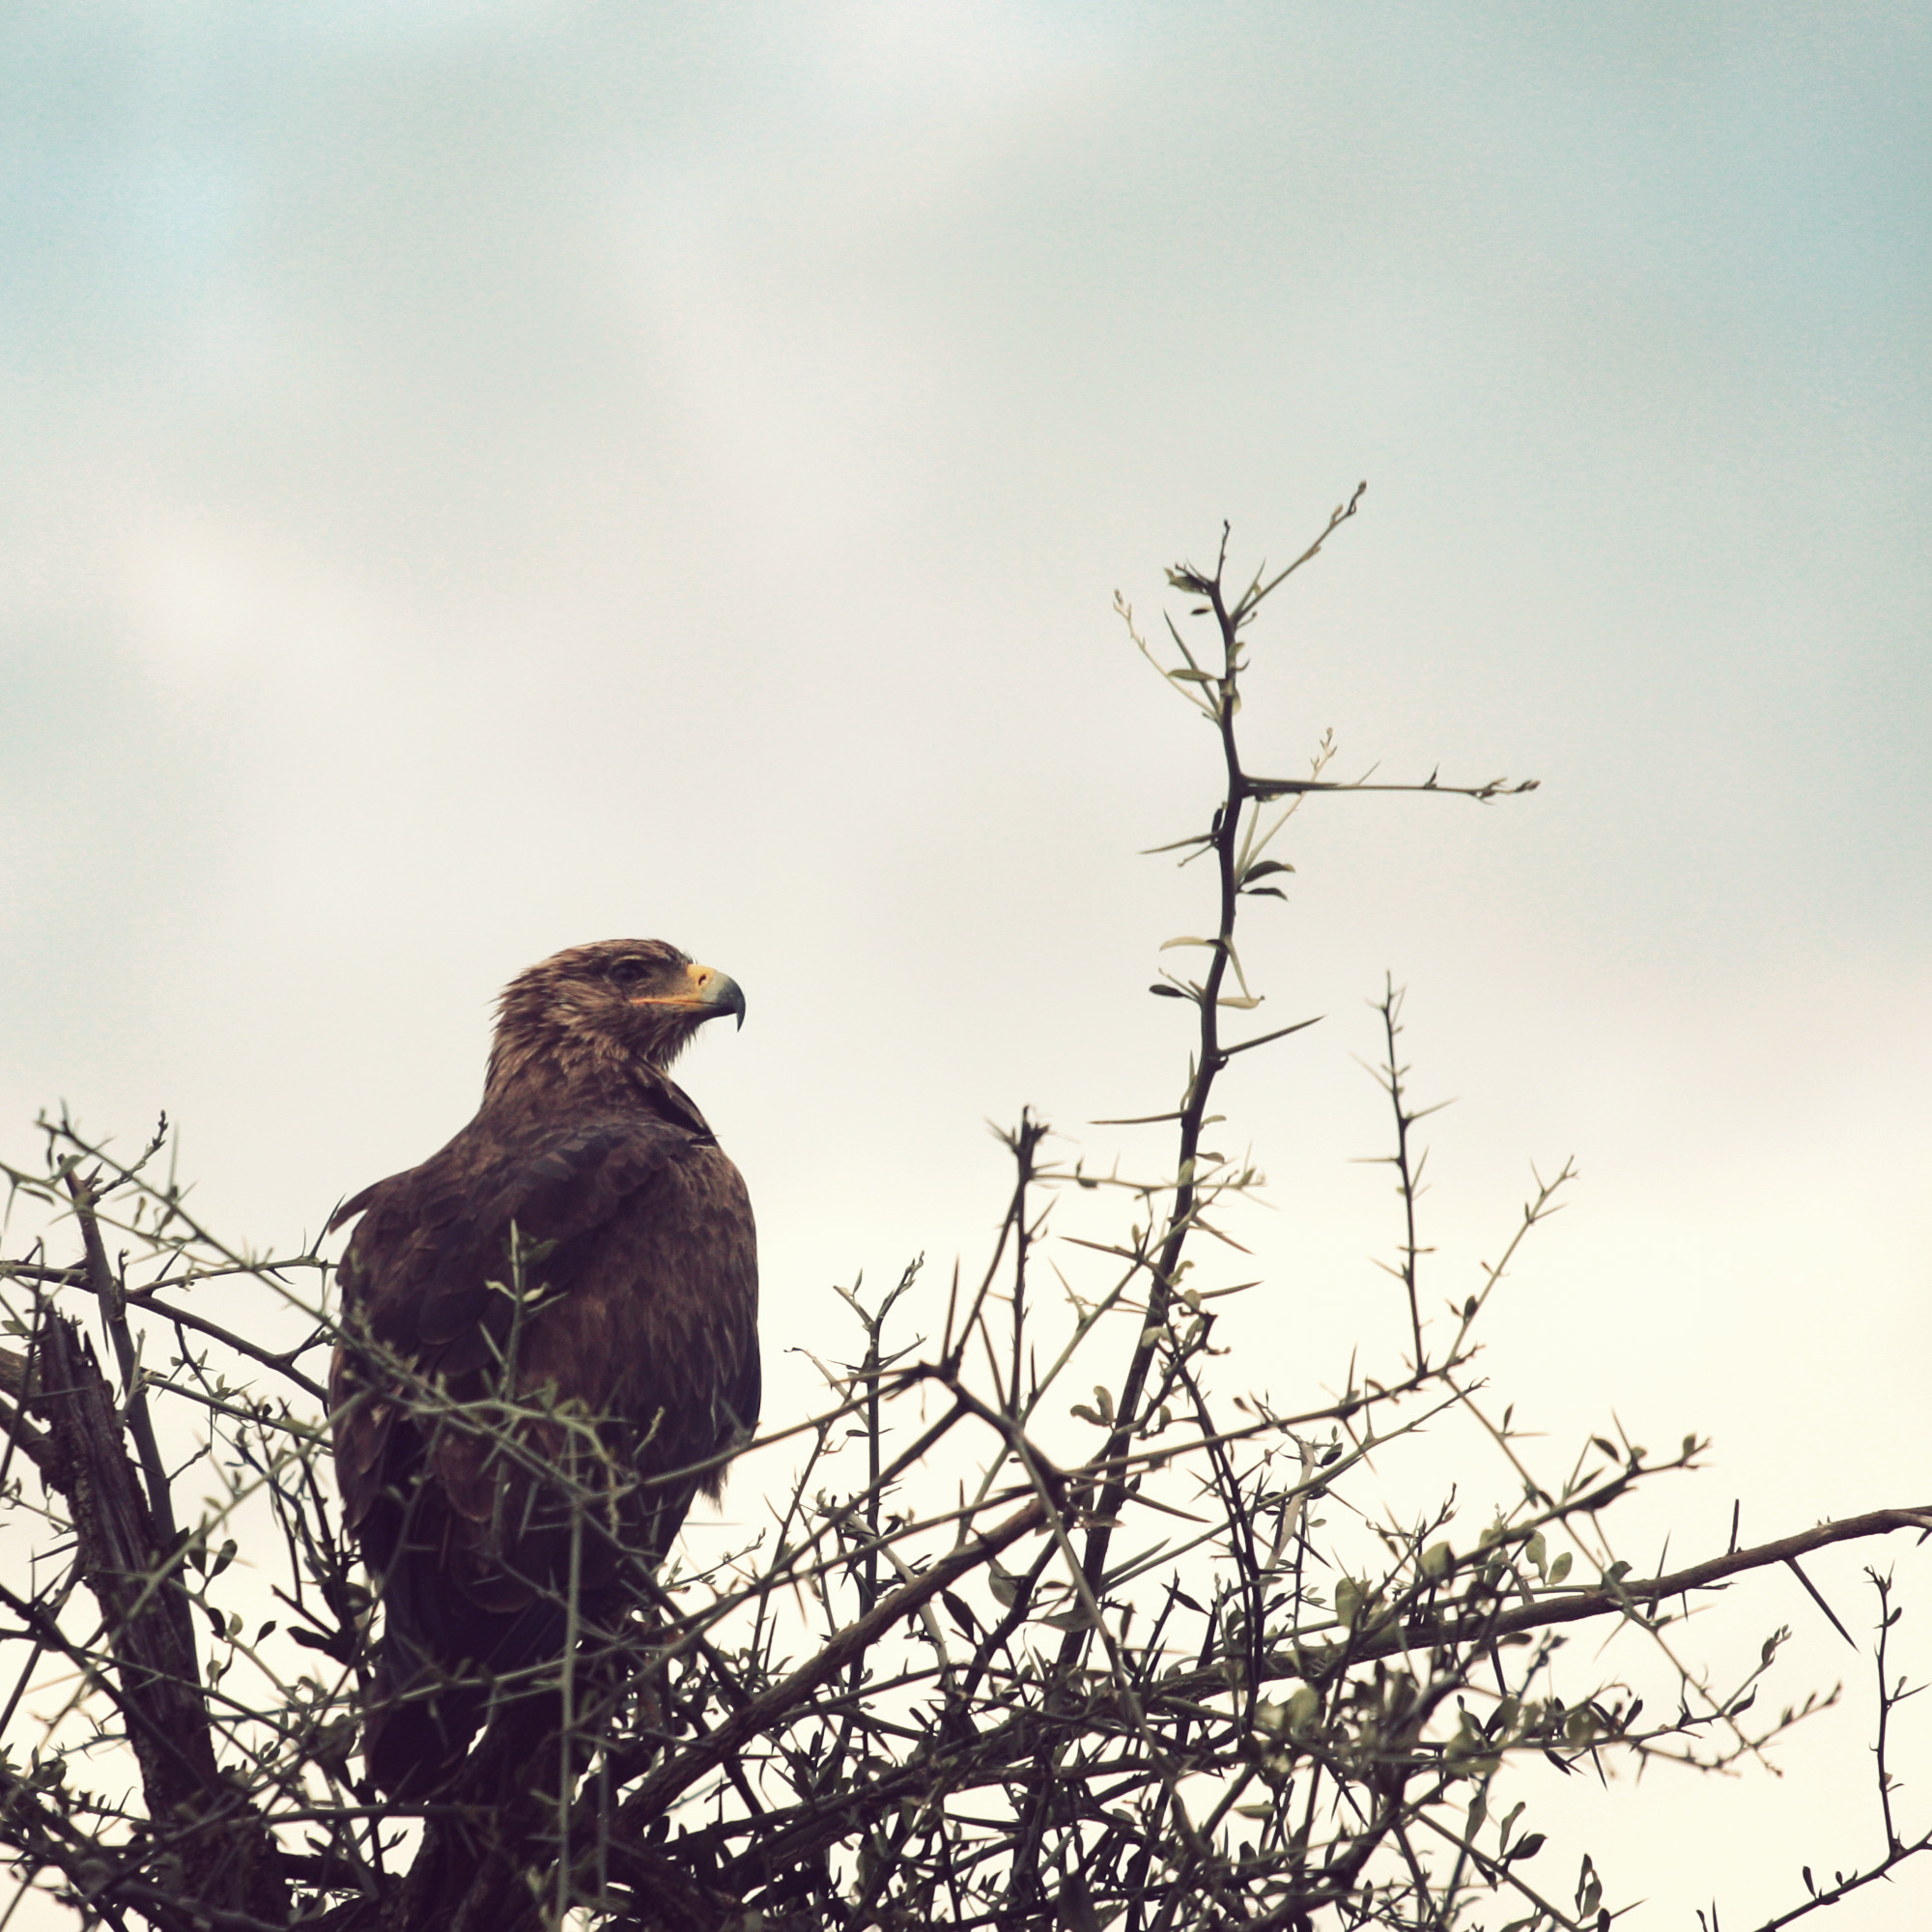 Tawny Eagle guarding his meal